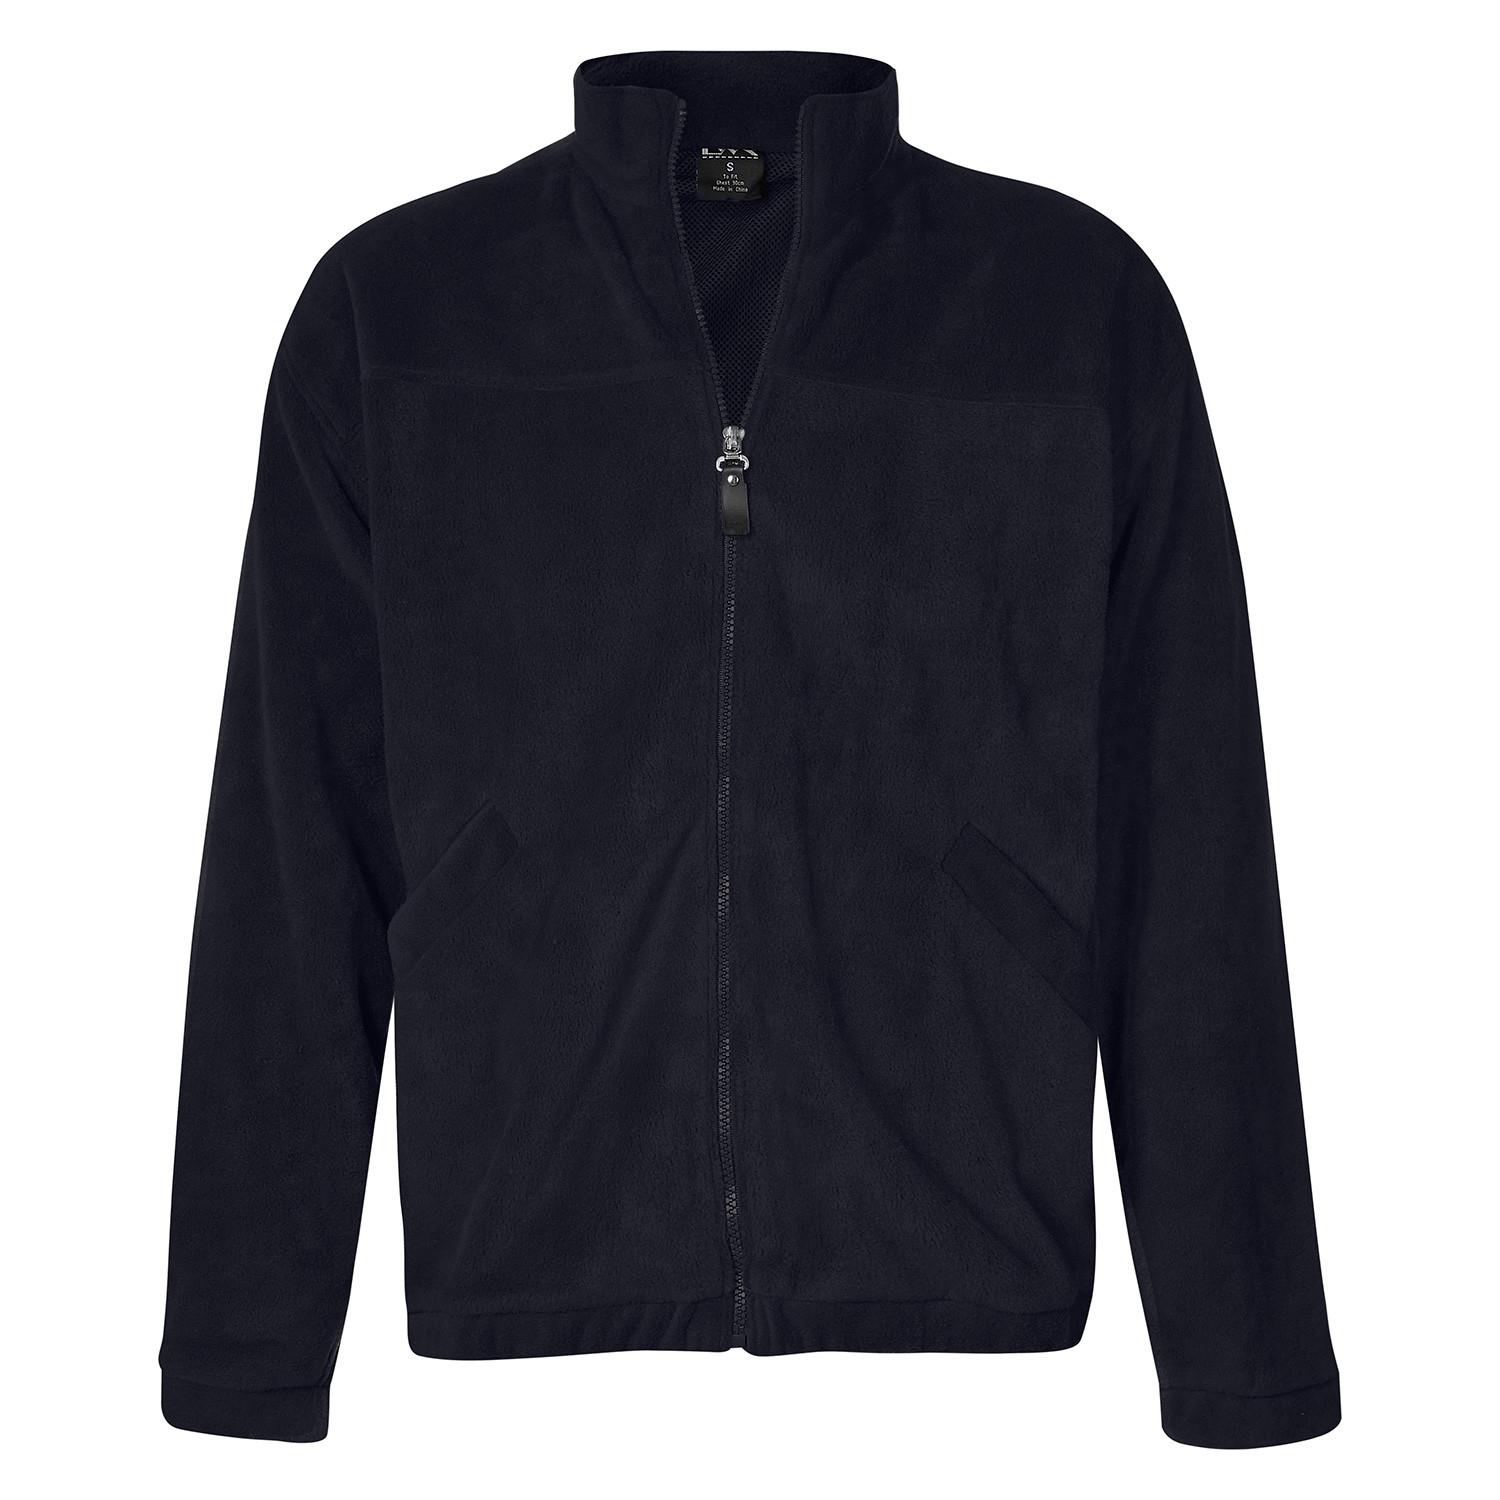 Ellery Polar Fleece Bomber Jacket